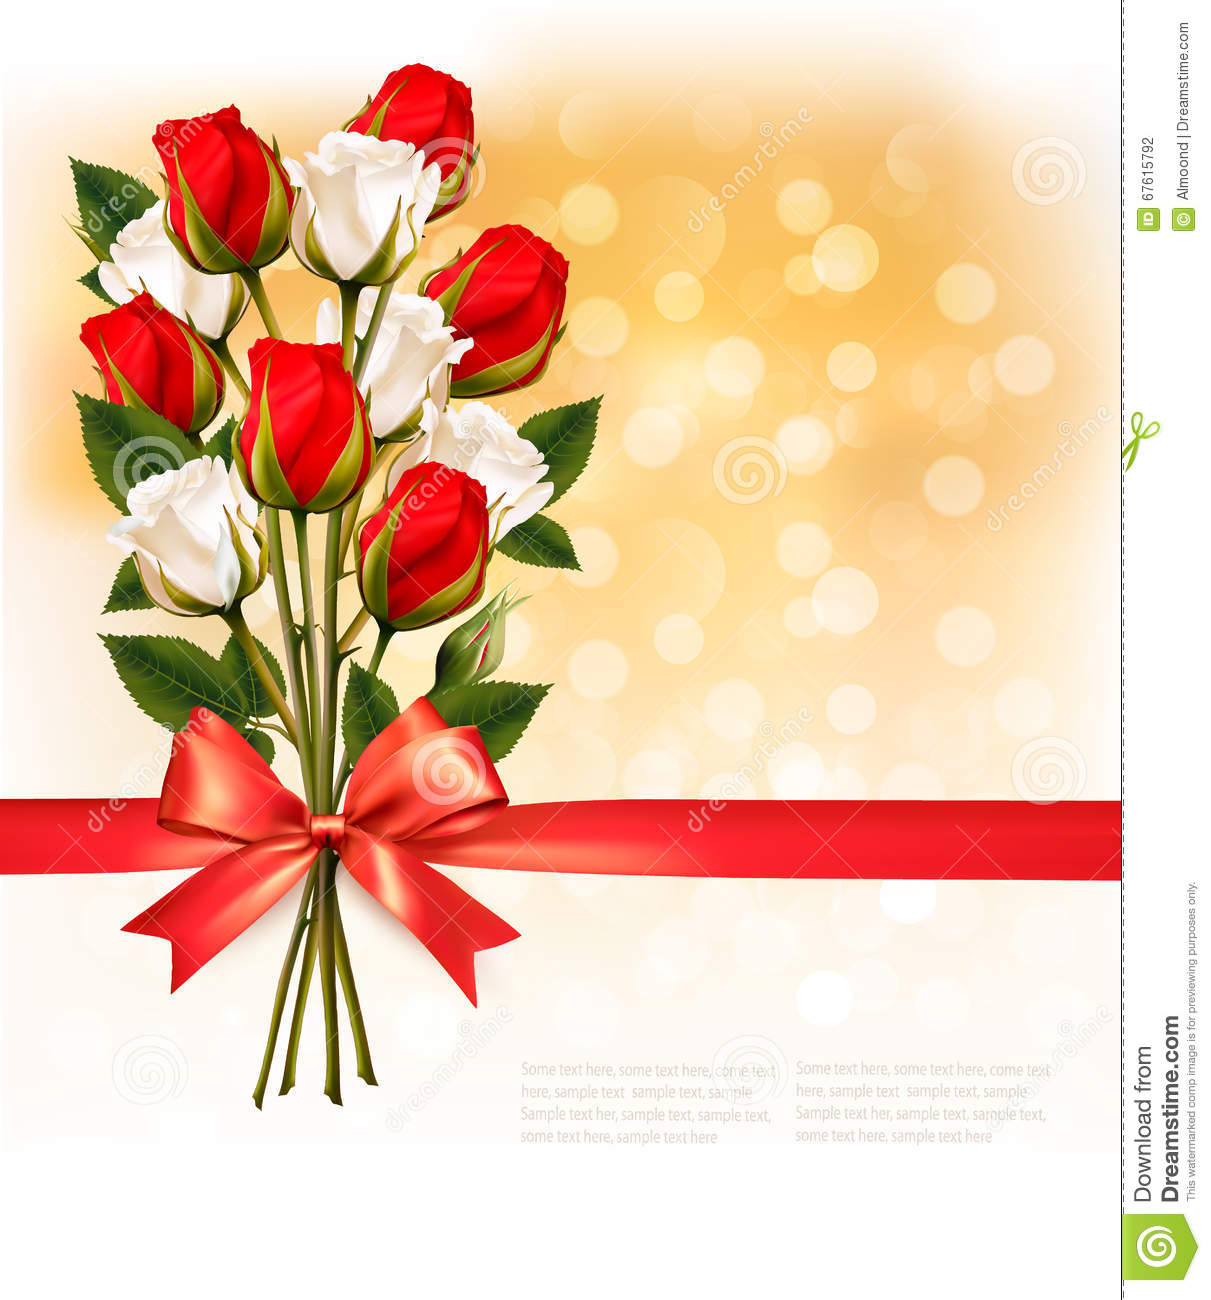 Bouquet Of Red And White Roses With A Red Ribbon On Gold Booker